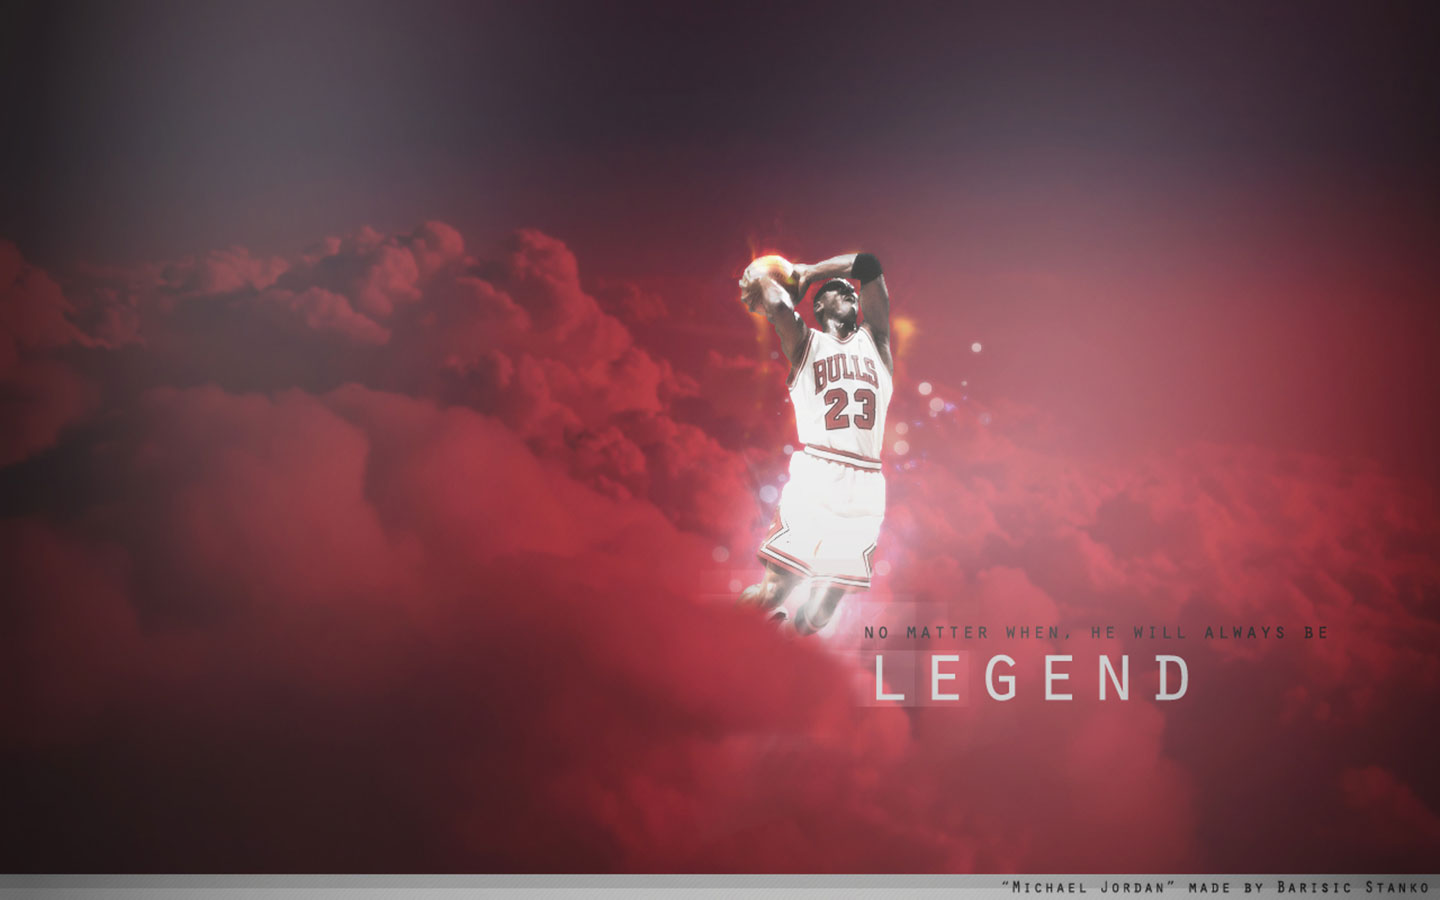 Michael Jordan Wallpapers Free Download - 49+ Fine Photos